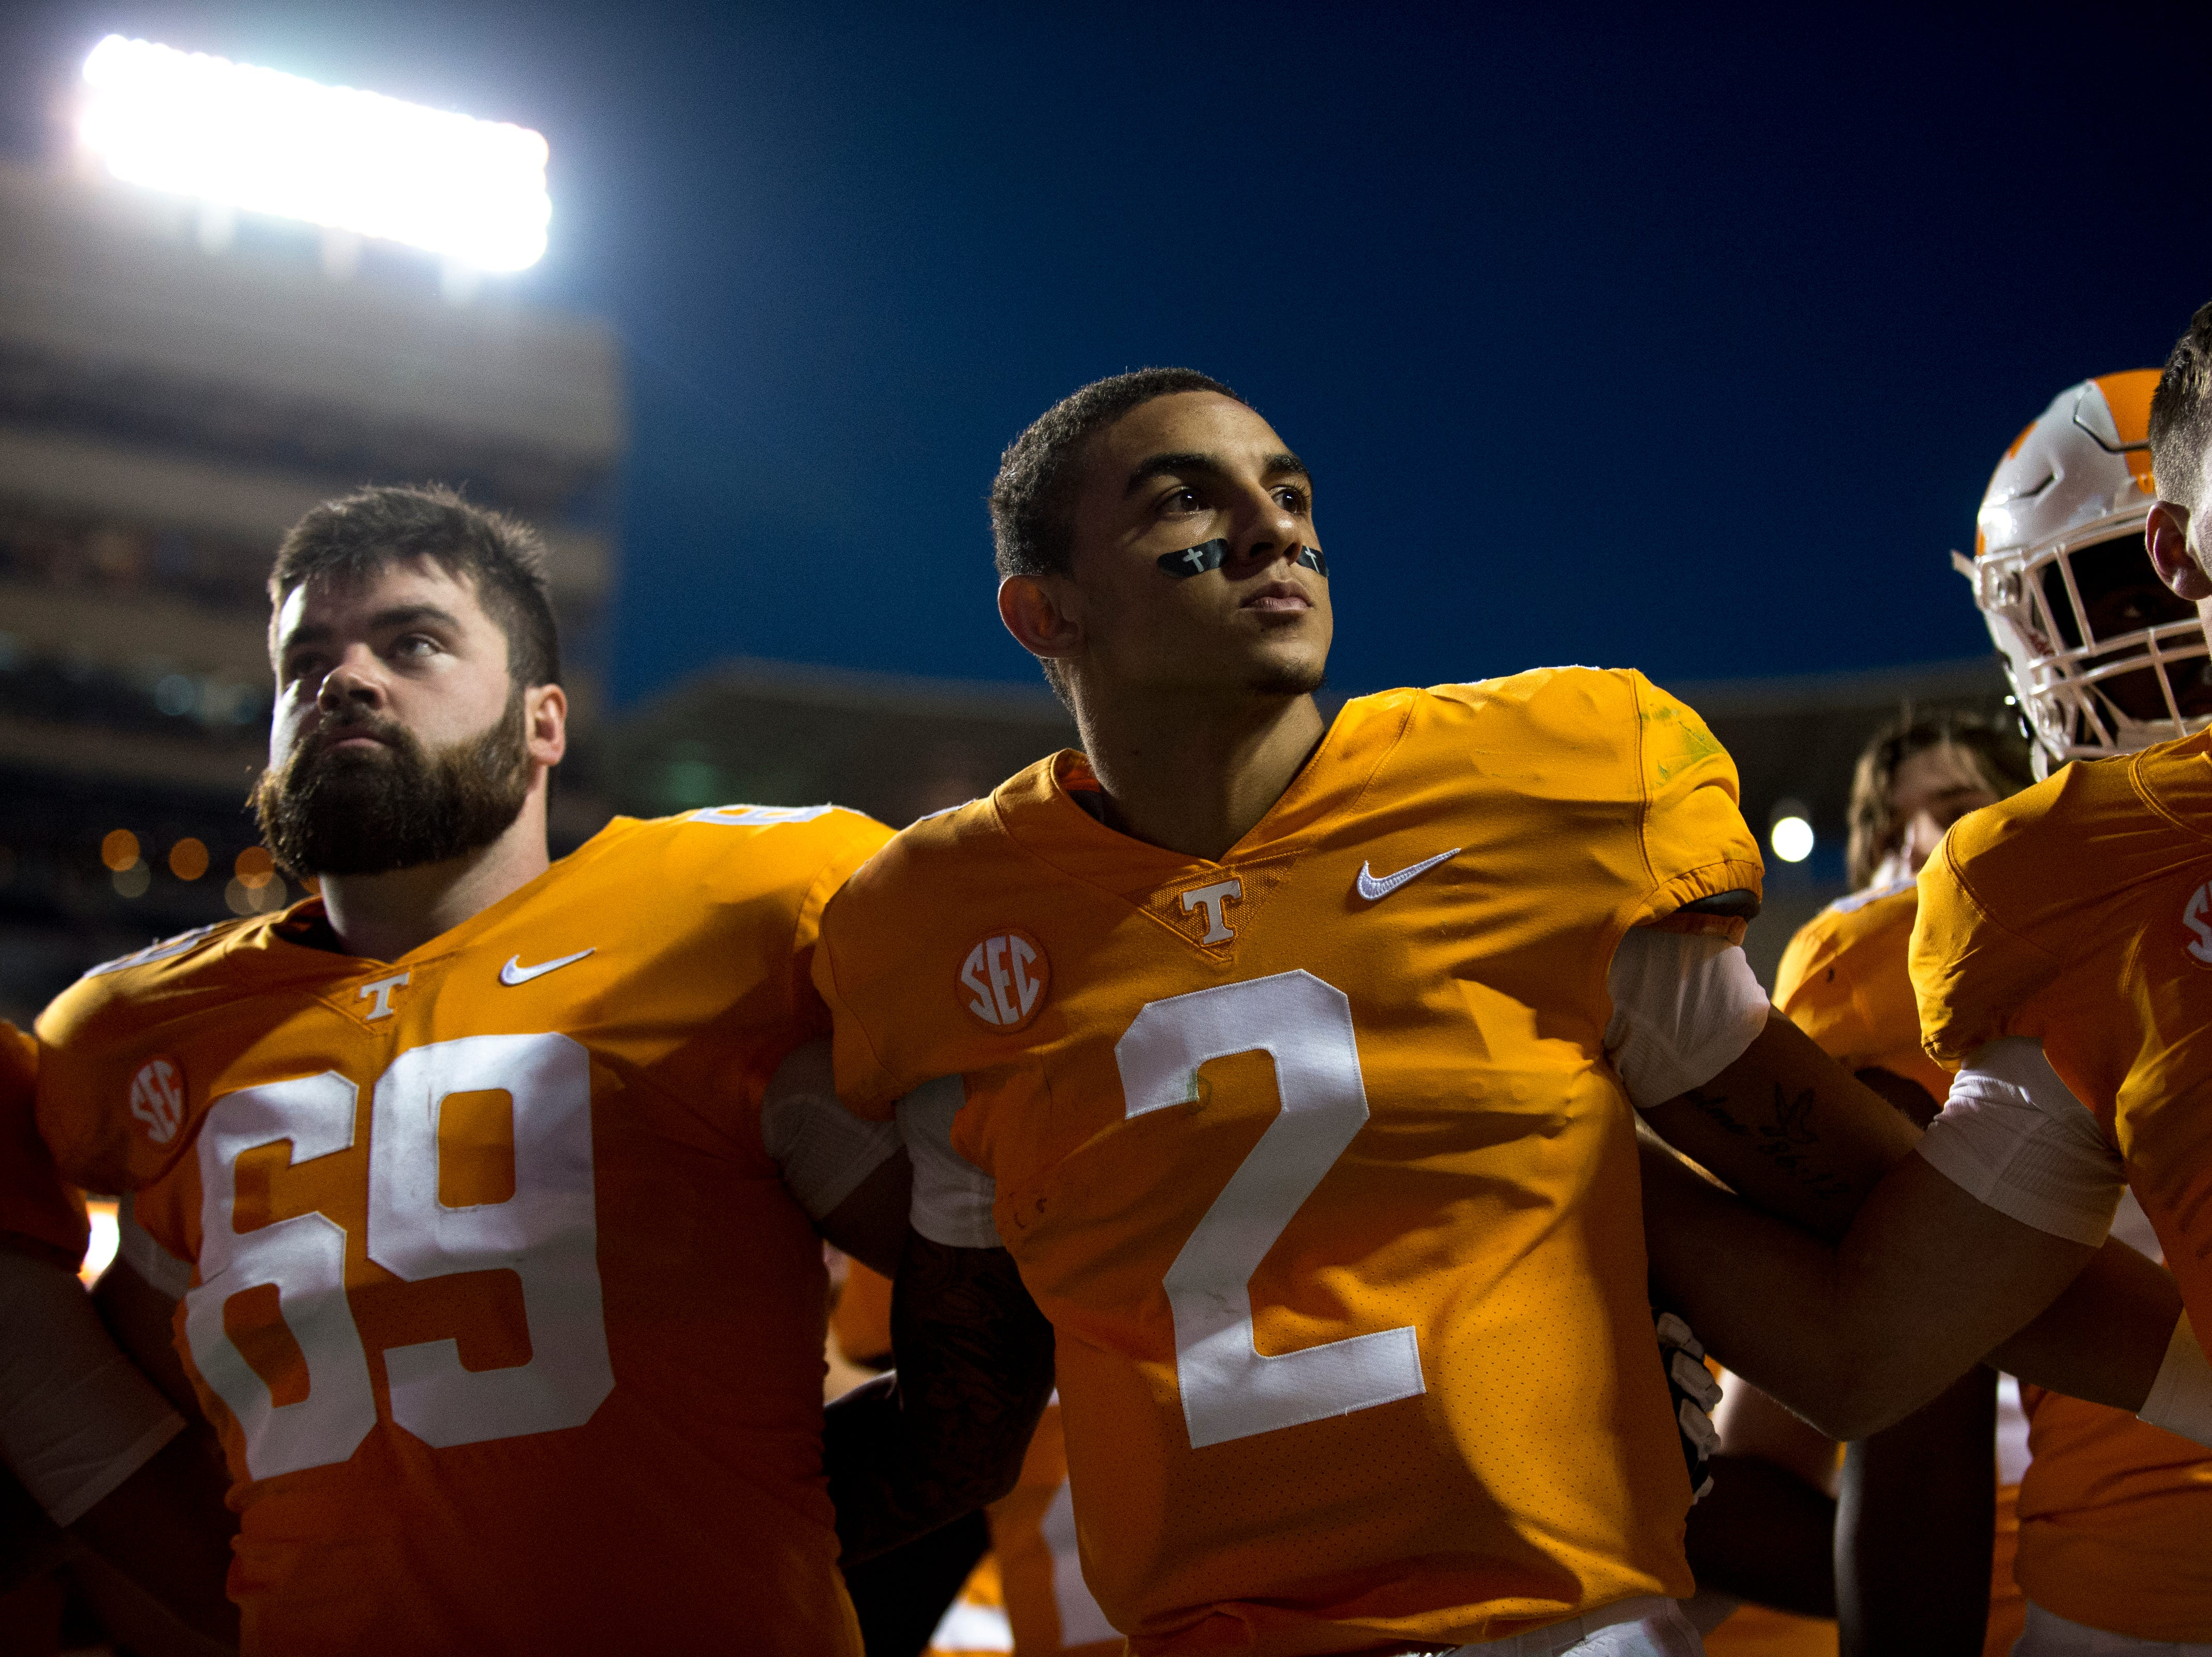 Tennessee quarterback Jarrett Guarantano (2) celebrates after Tennessee's 14-3 win over Charlotte during its homecoming game at Neyland Stadium in Knoxville, Tennessee on Saturday, November 3, 2018.